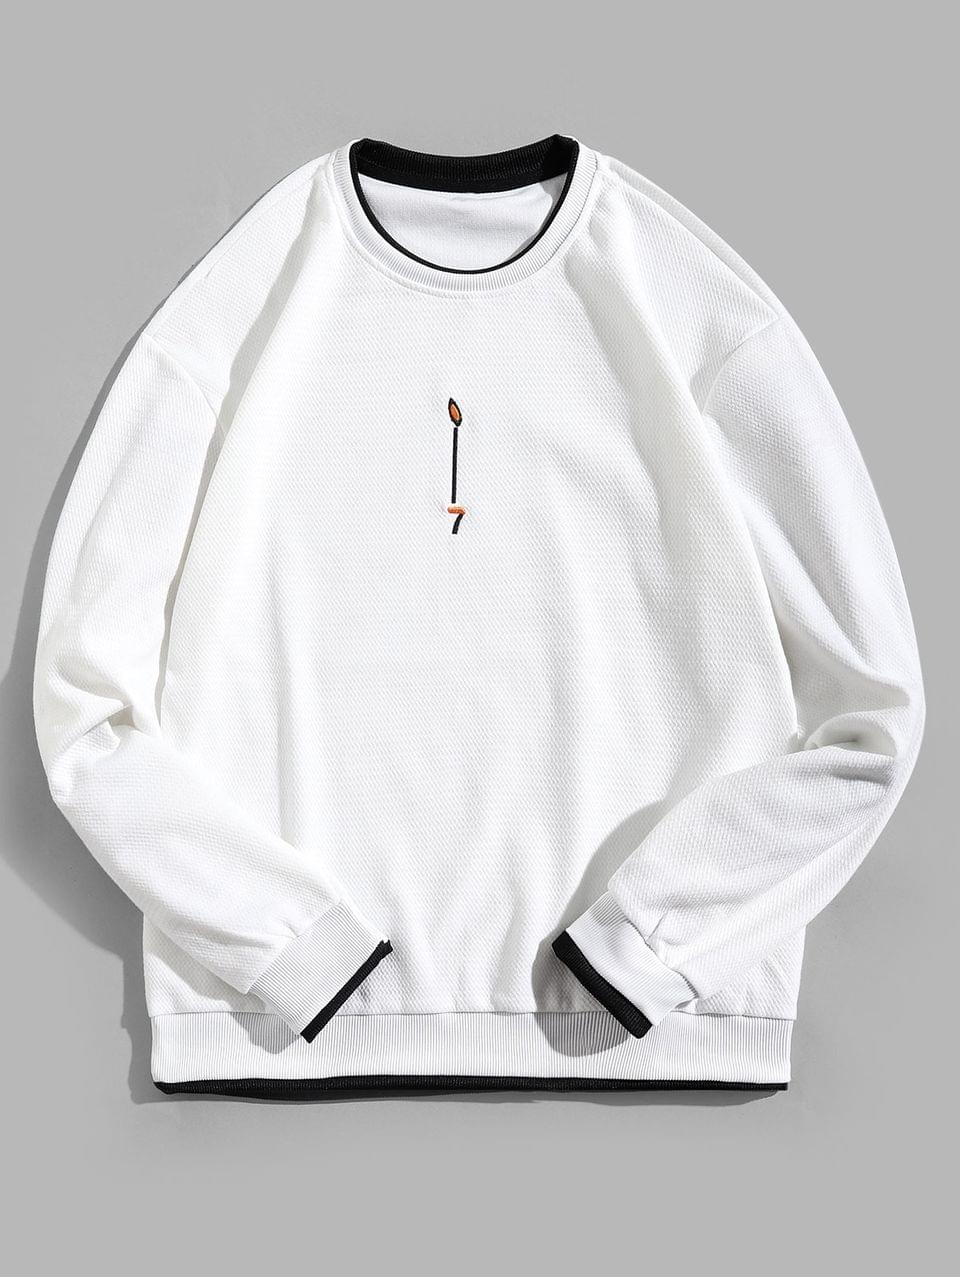 Men's Contrast Trim False Two Pieces Ringer Sweatshirt - White M